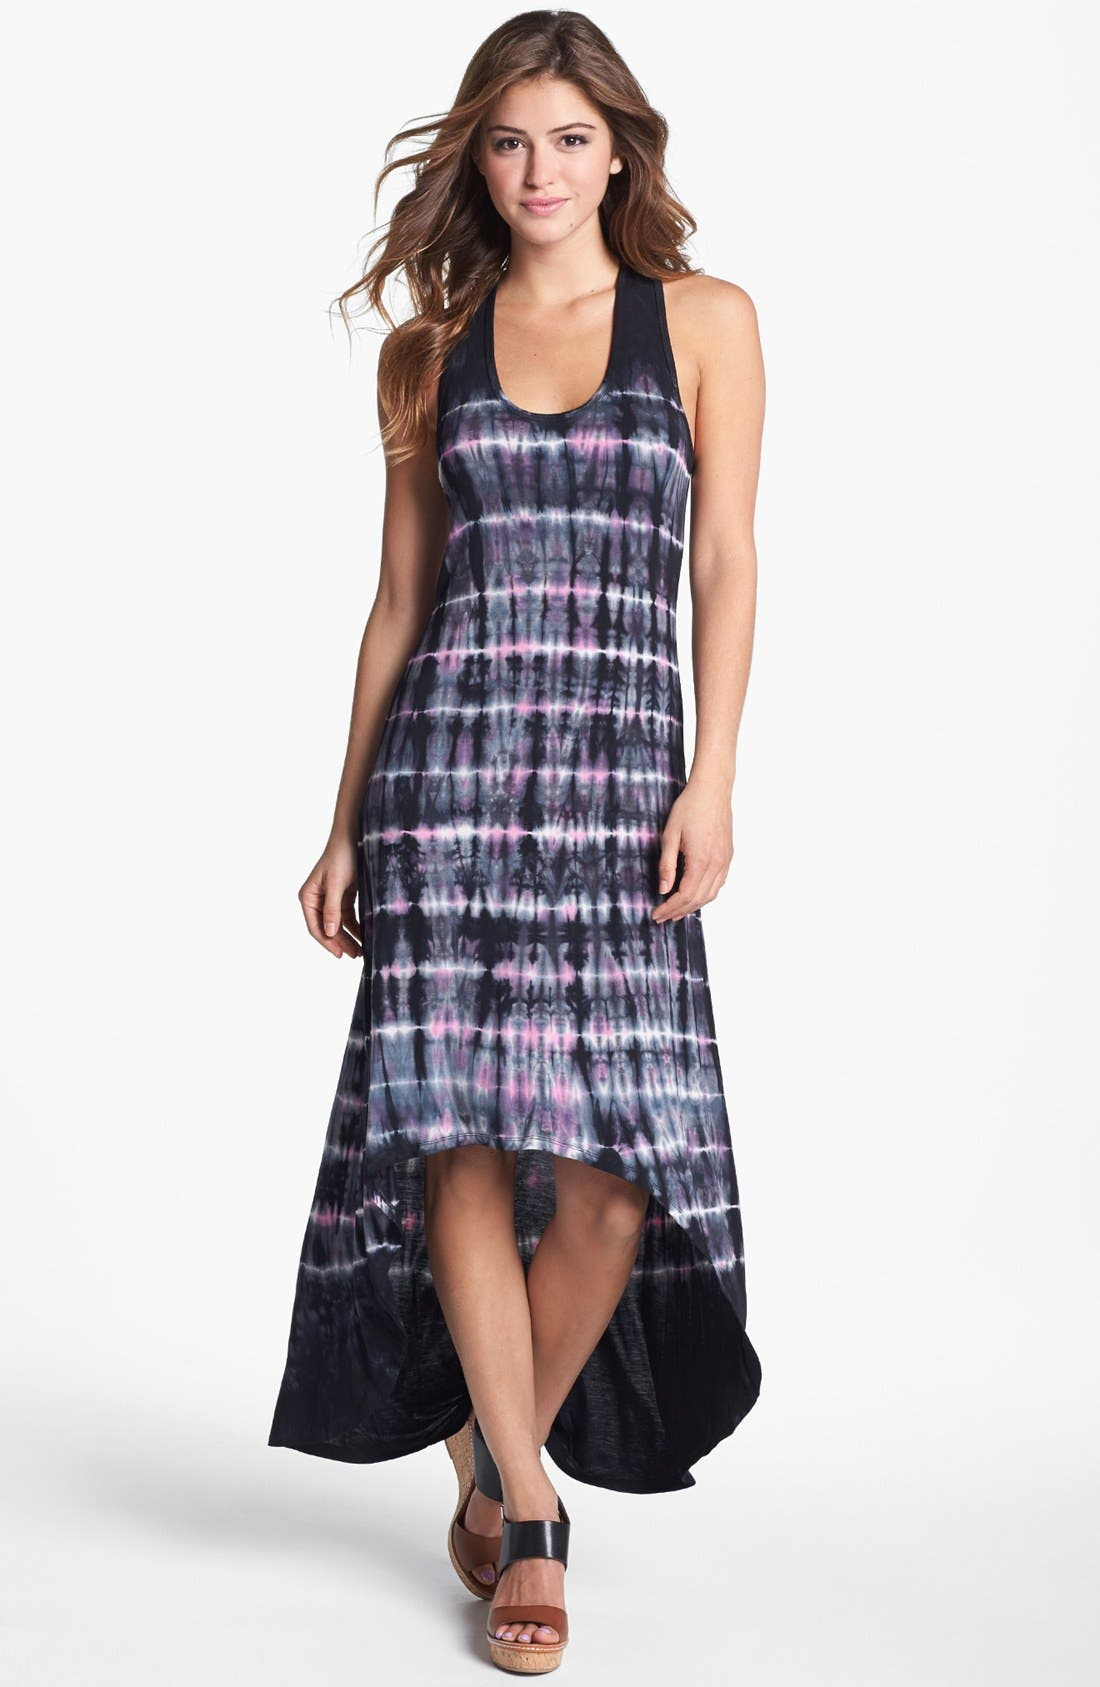 Alternate Image 1 Selected - Felicity & Coco 'Ivaynn' Tie Dye High/Low Tank Dress (Nordstrom Exclusive)